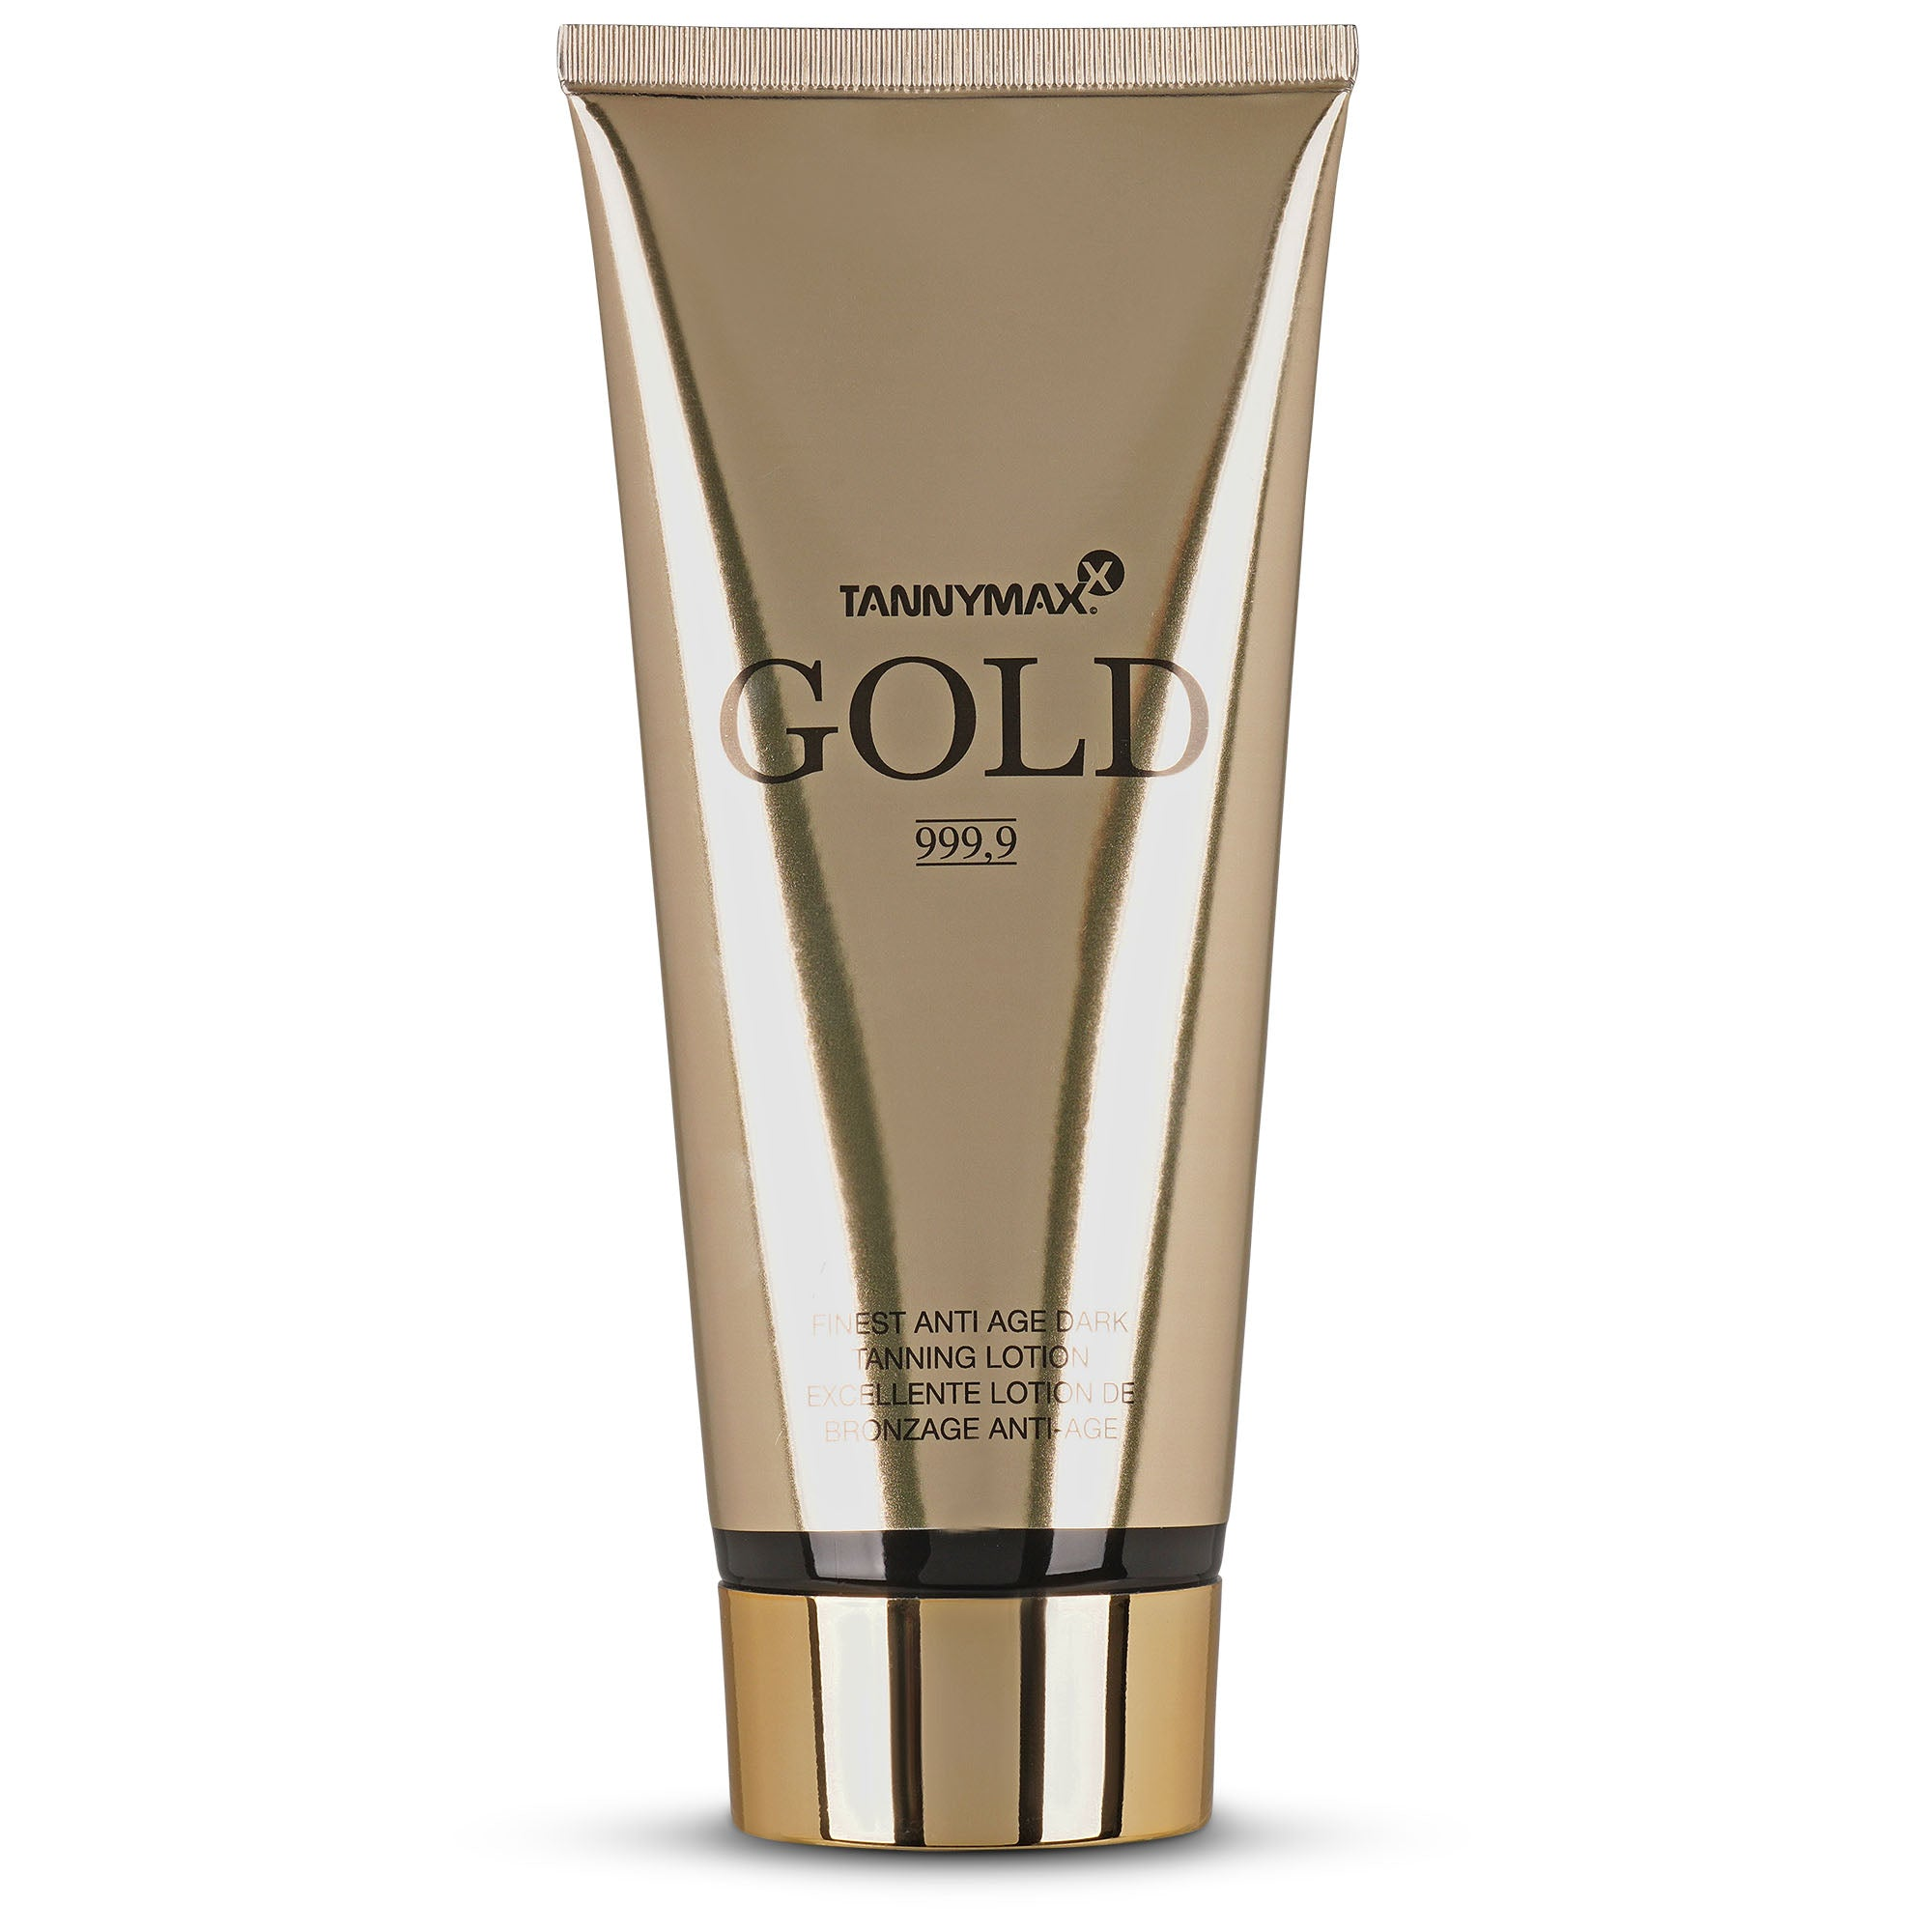 Gold 999,9 Finest Anti Age Dark Tanning Lotion